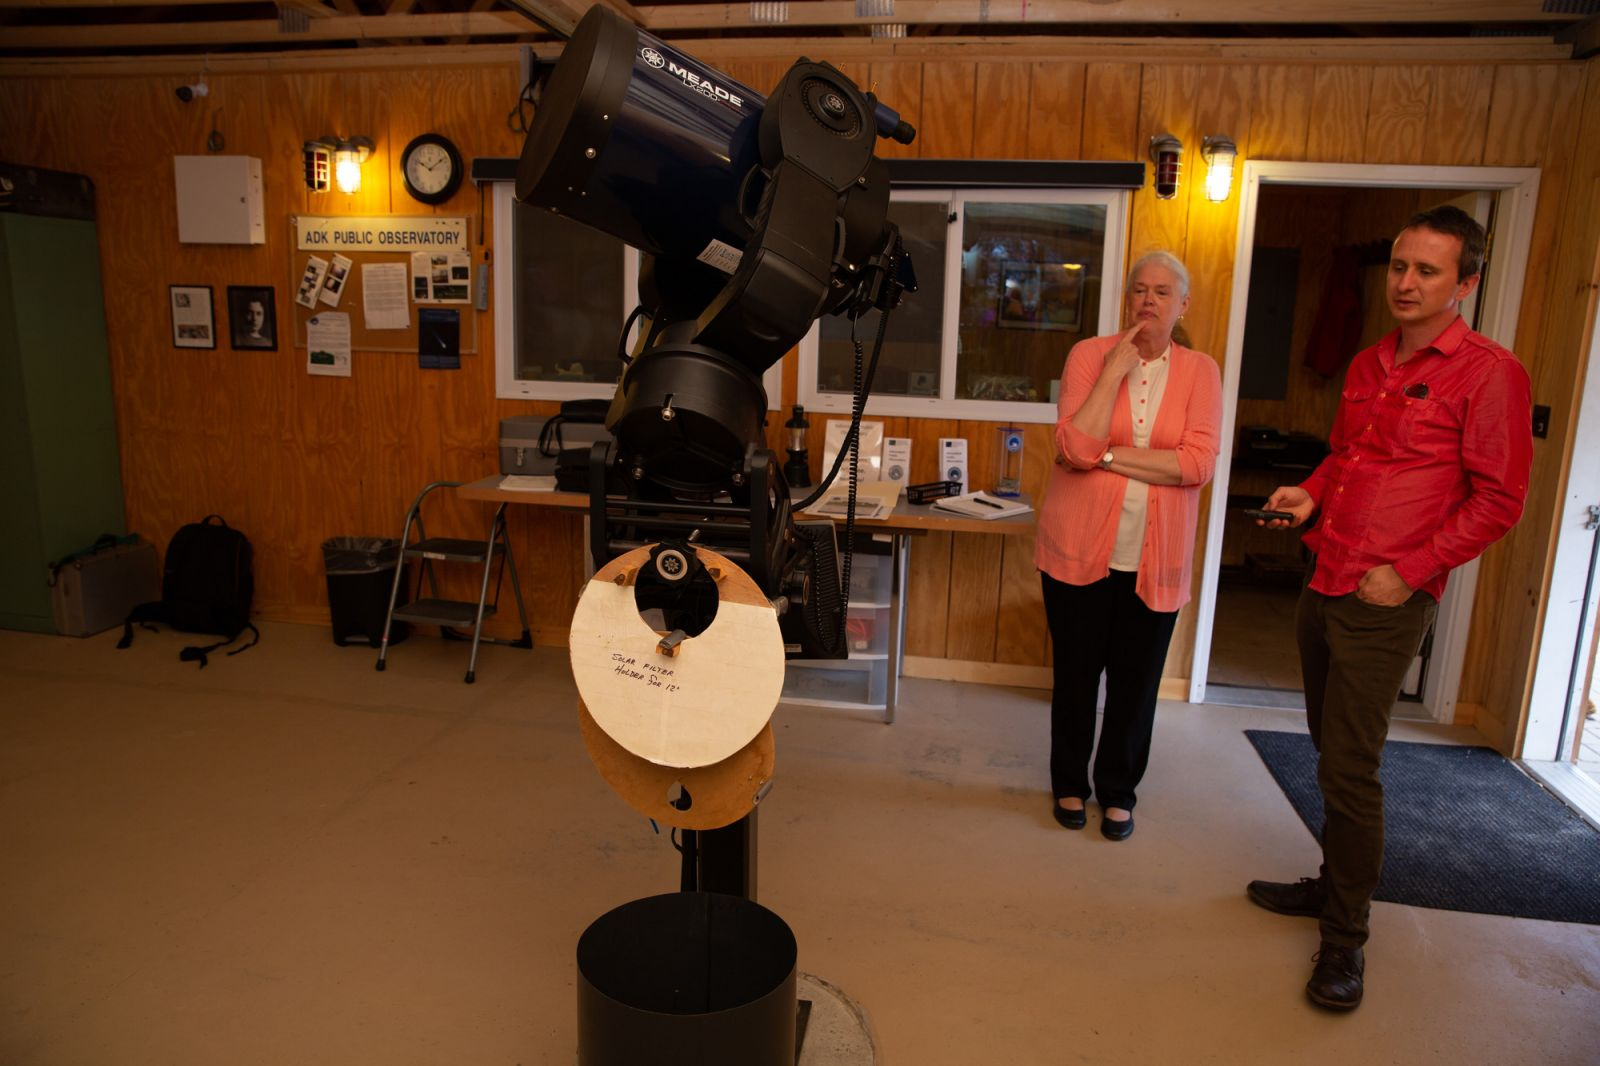 Mary Beth Joel gave me an extensive tour of the Adirondack Public Observatory.